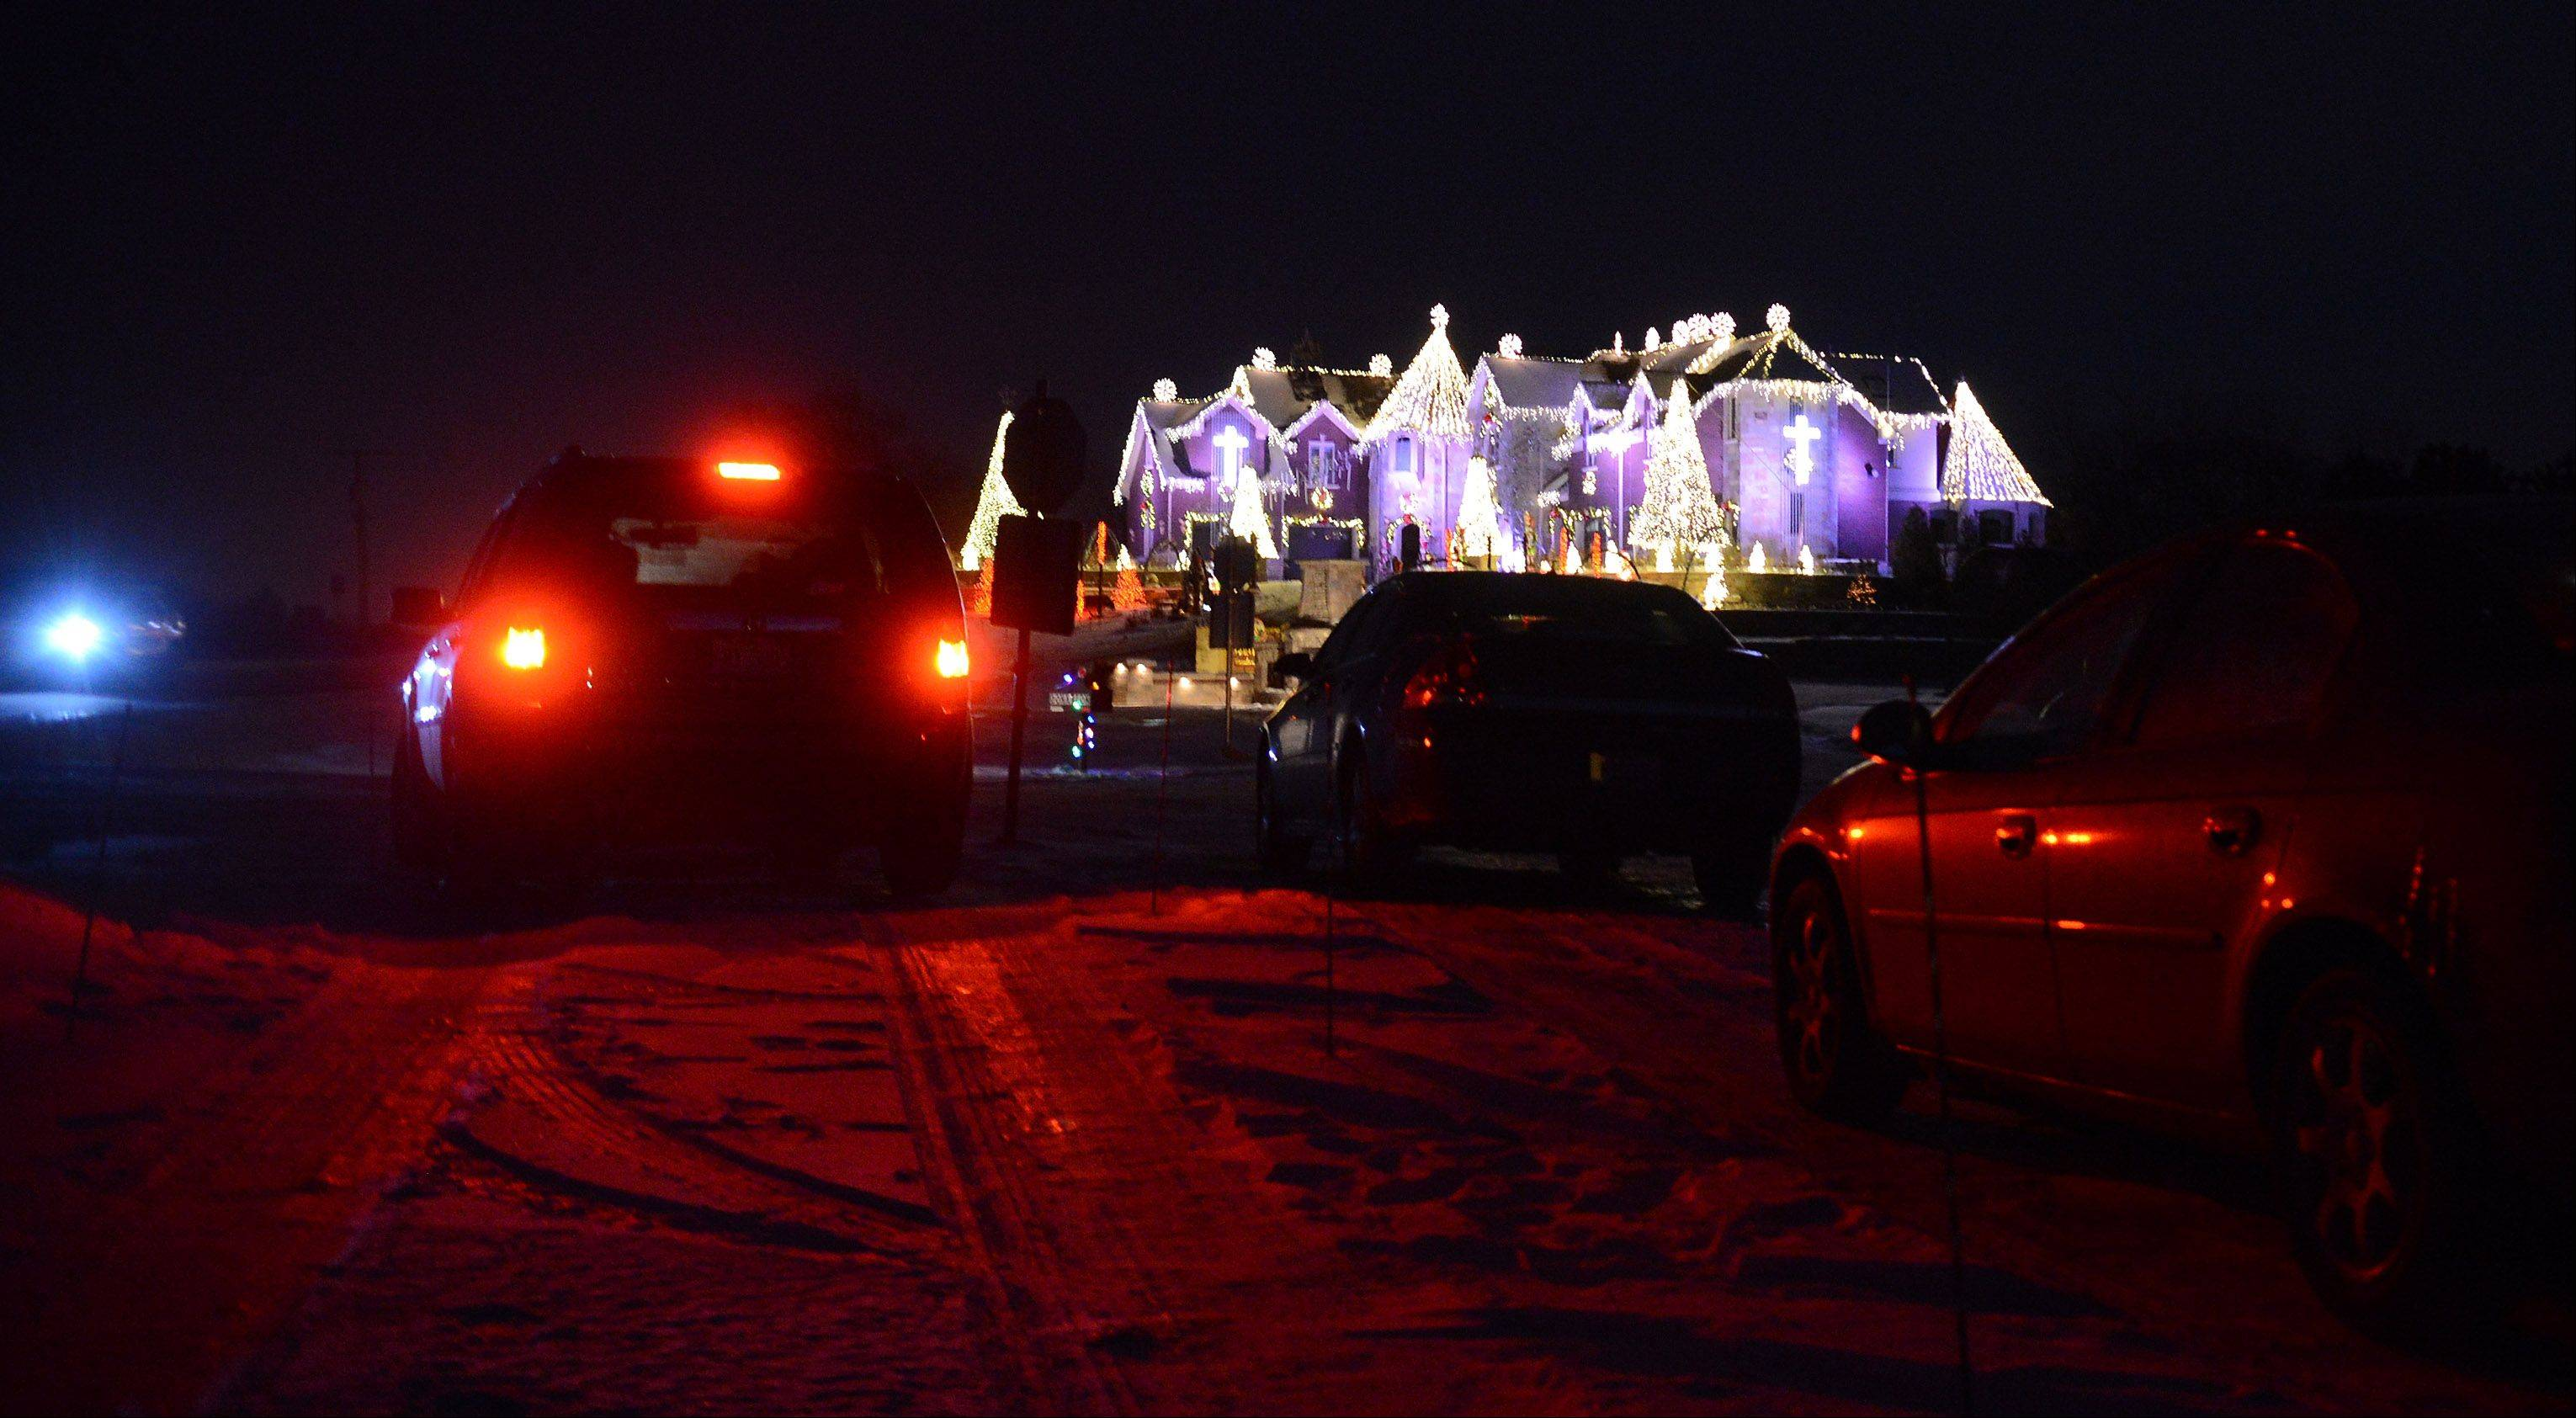 This year, Brian Larson added a paved parking lot, allowing visitors to enjoy the light show at his Elburn home.